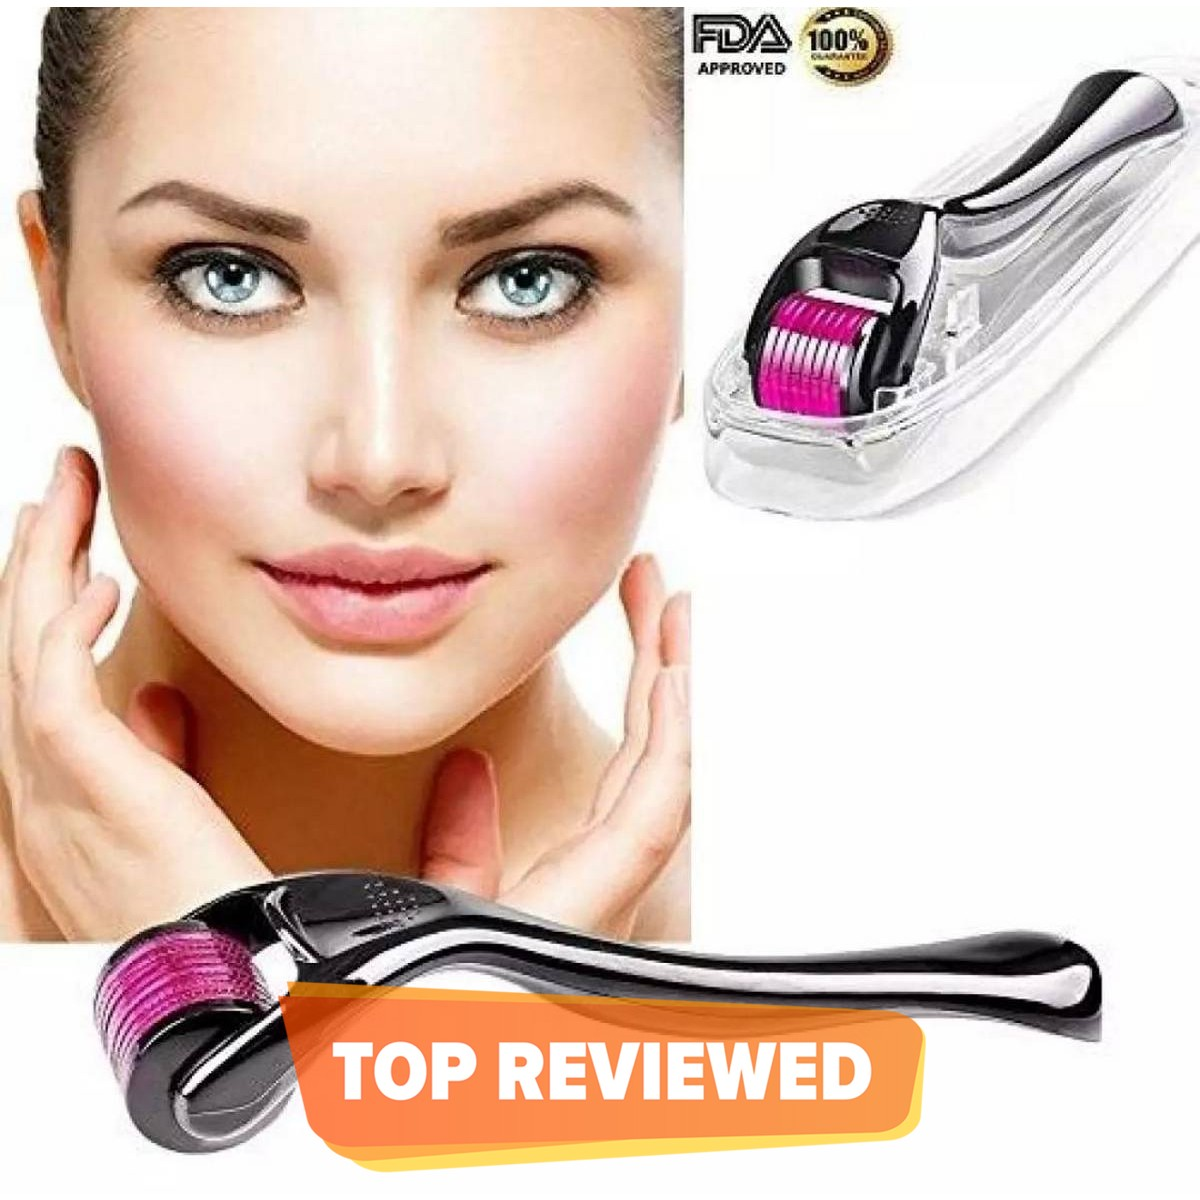 Derma Roller 1.00mm Skin Therapy Micro-Needle 540 For Acne Scars Wrinkles Stretch & Pores